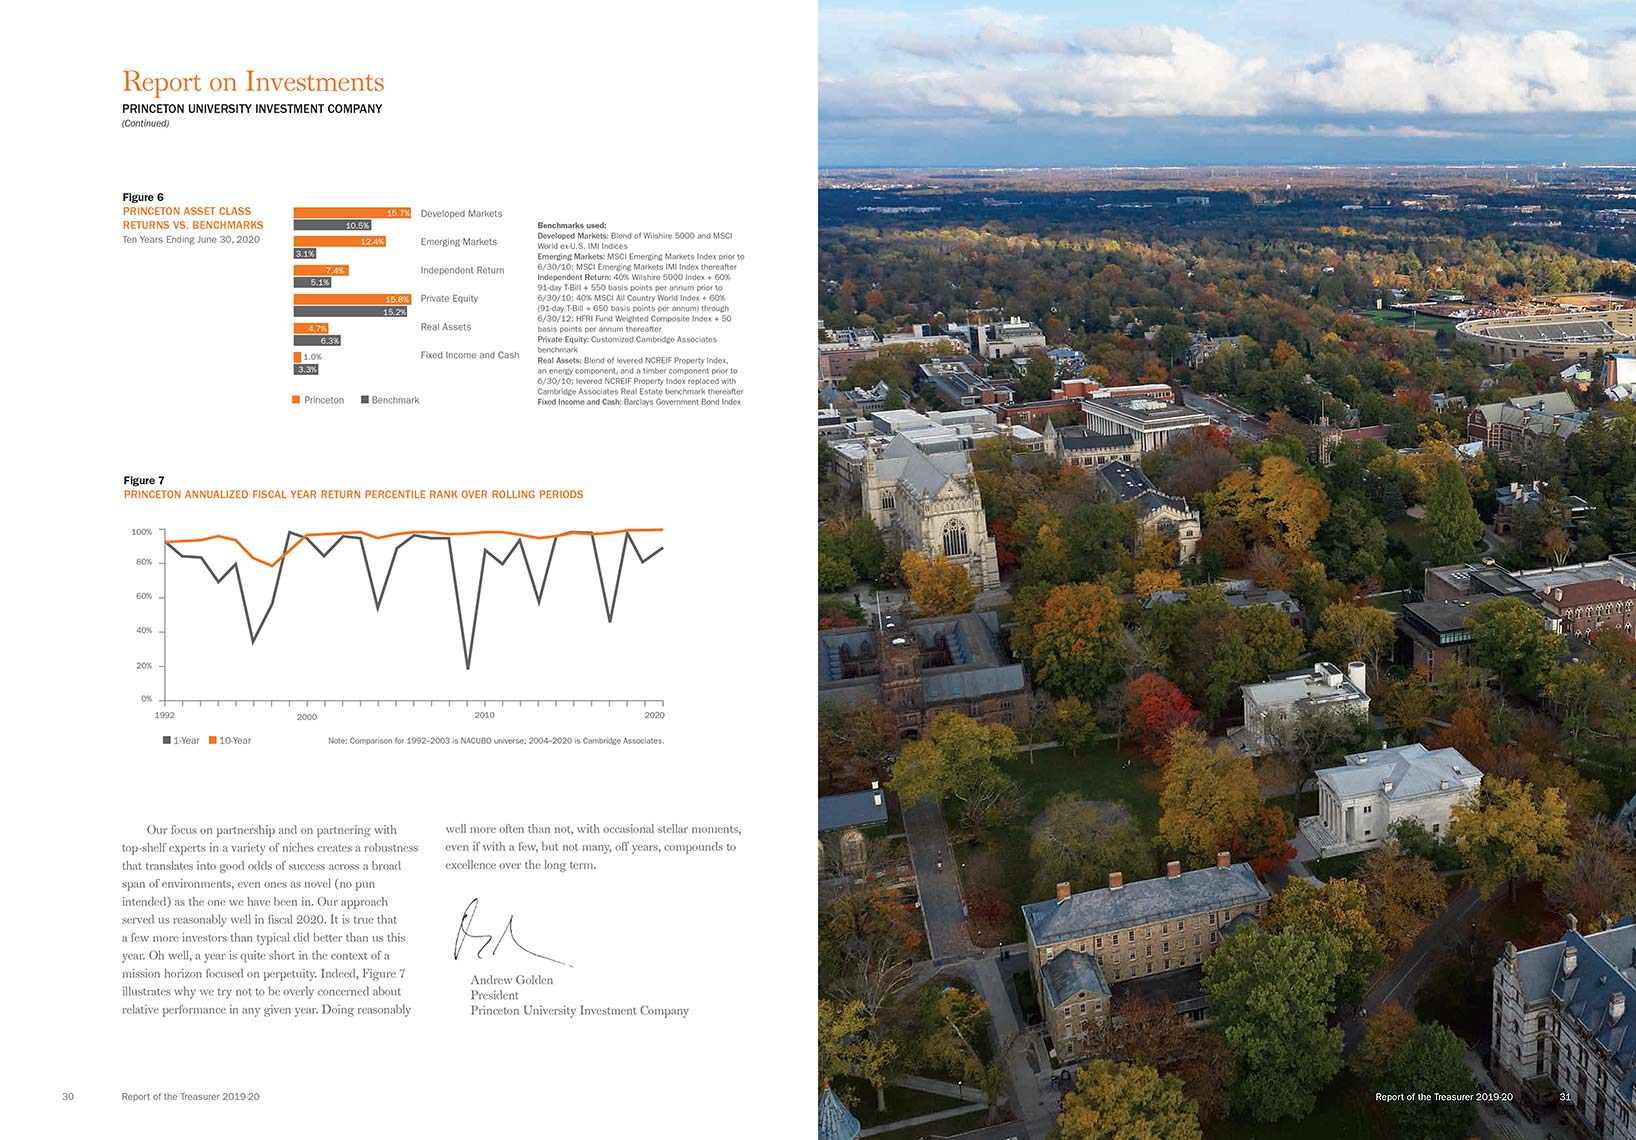 Report on Investments, Report of the Treasurer 2019-20 Princeton University